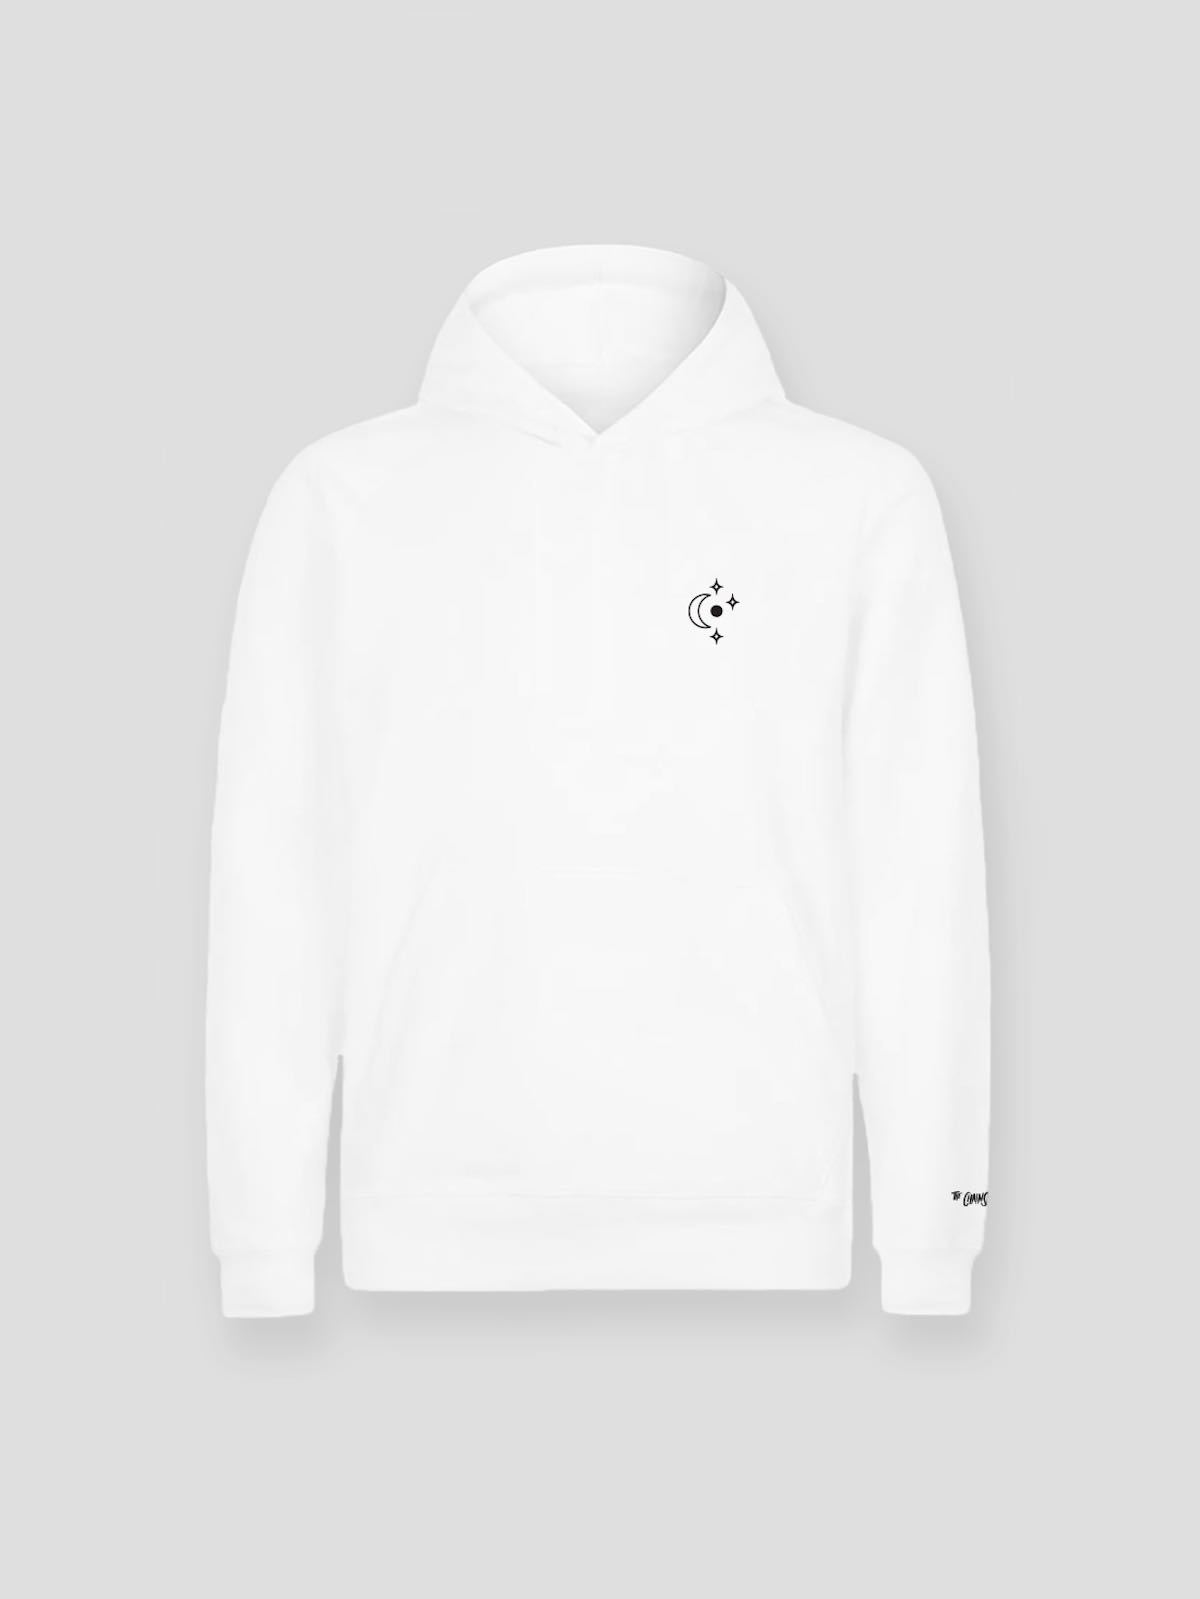 He Had No Enemy Hoodie (White) - The Chainsmokers